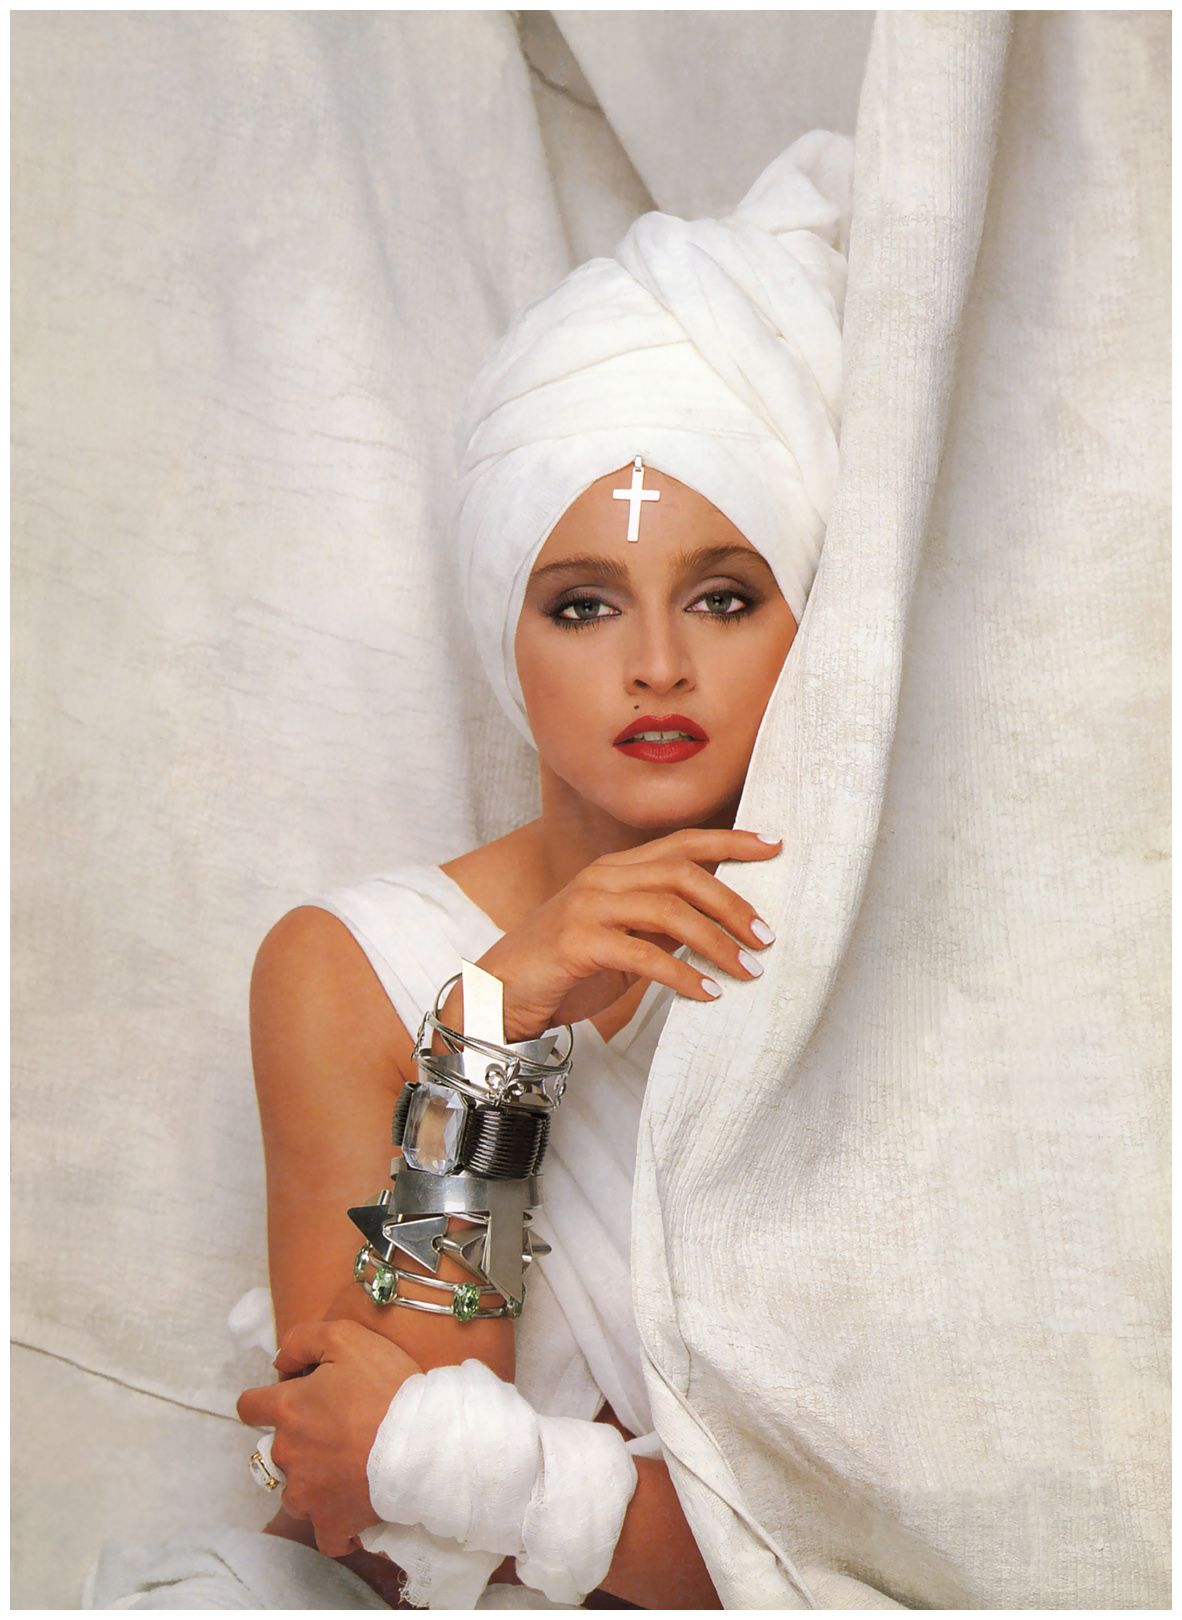 madonna-herb-ritts-photoshoot-1986-0001. just beautiful ...